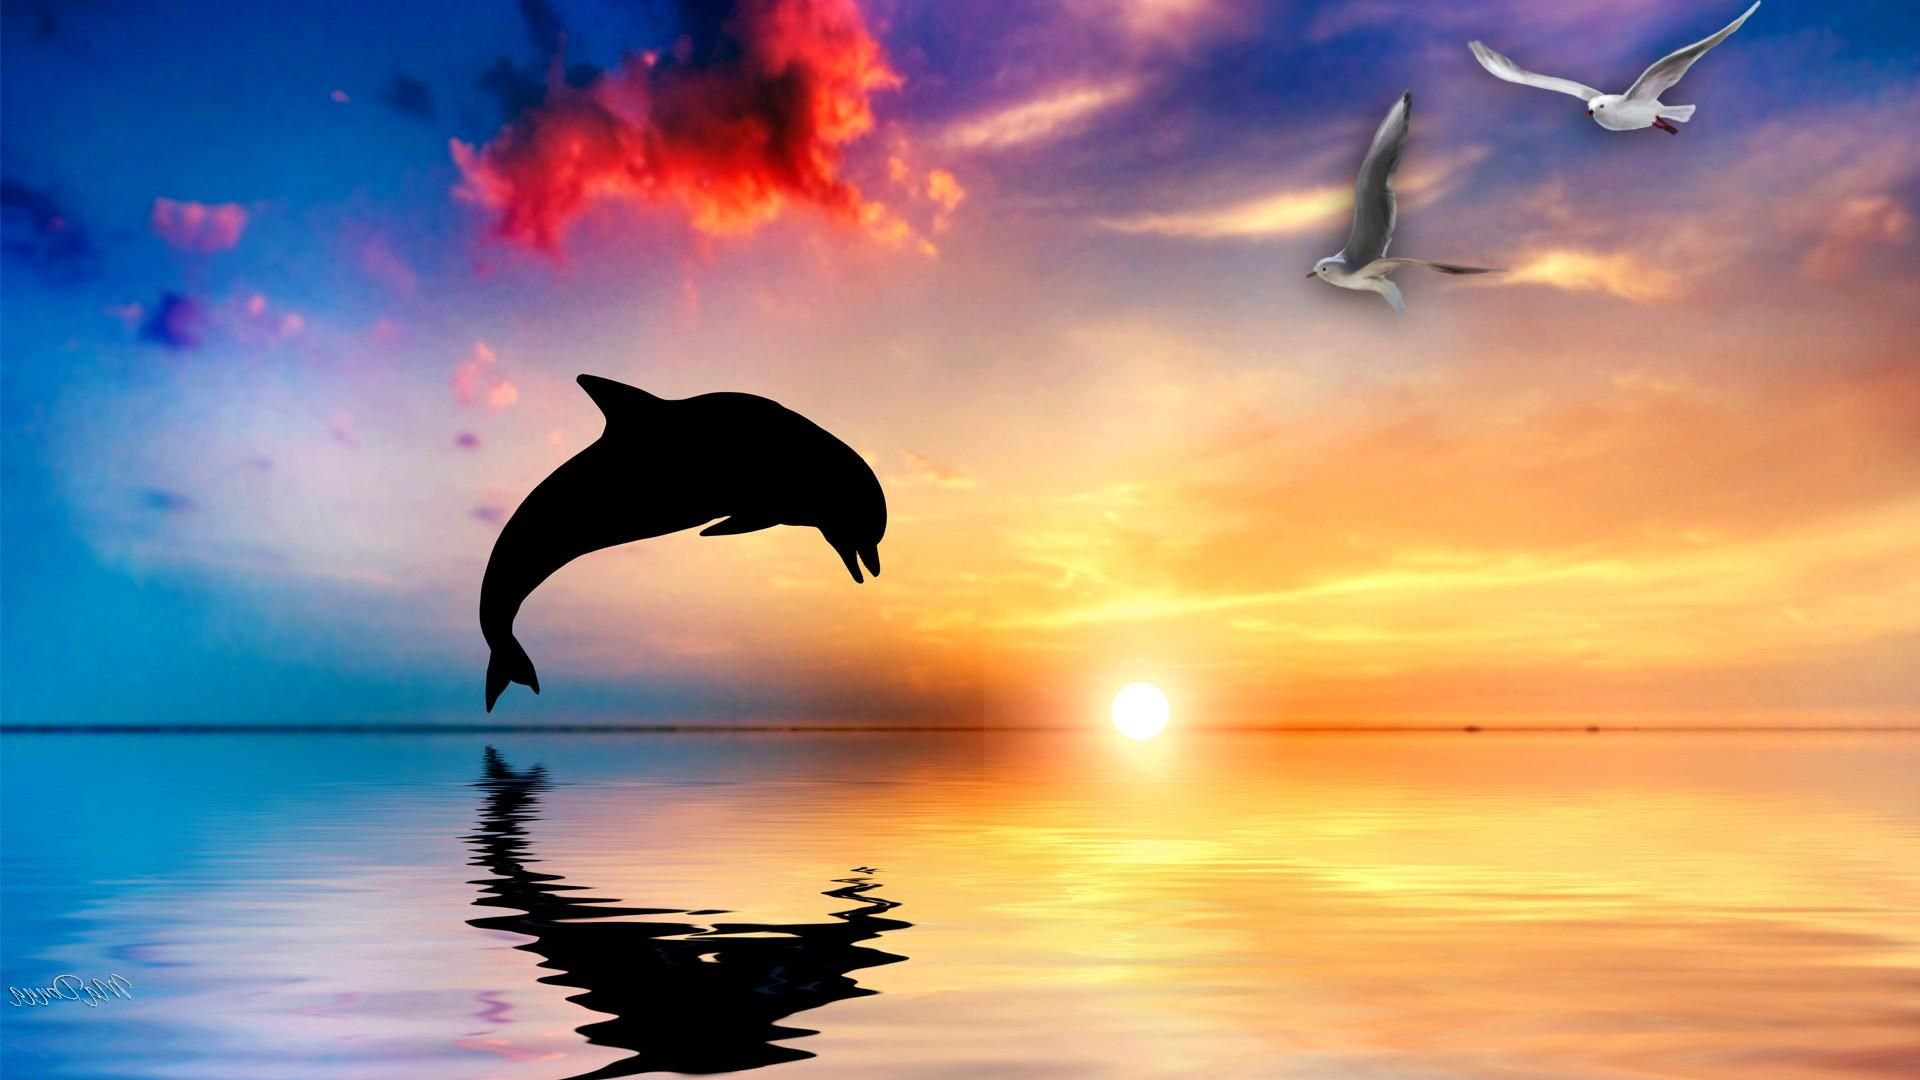 Wallpapers Of Dolphins Wallpaper